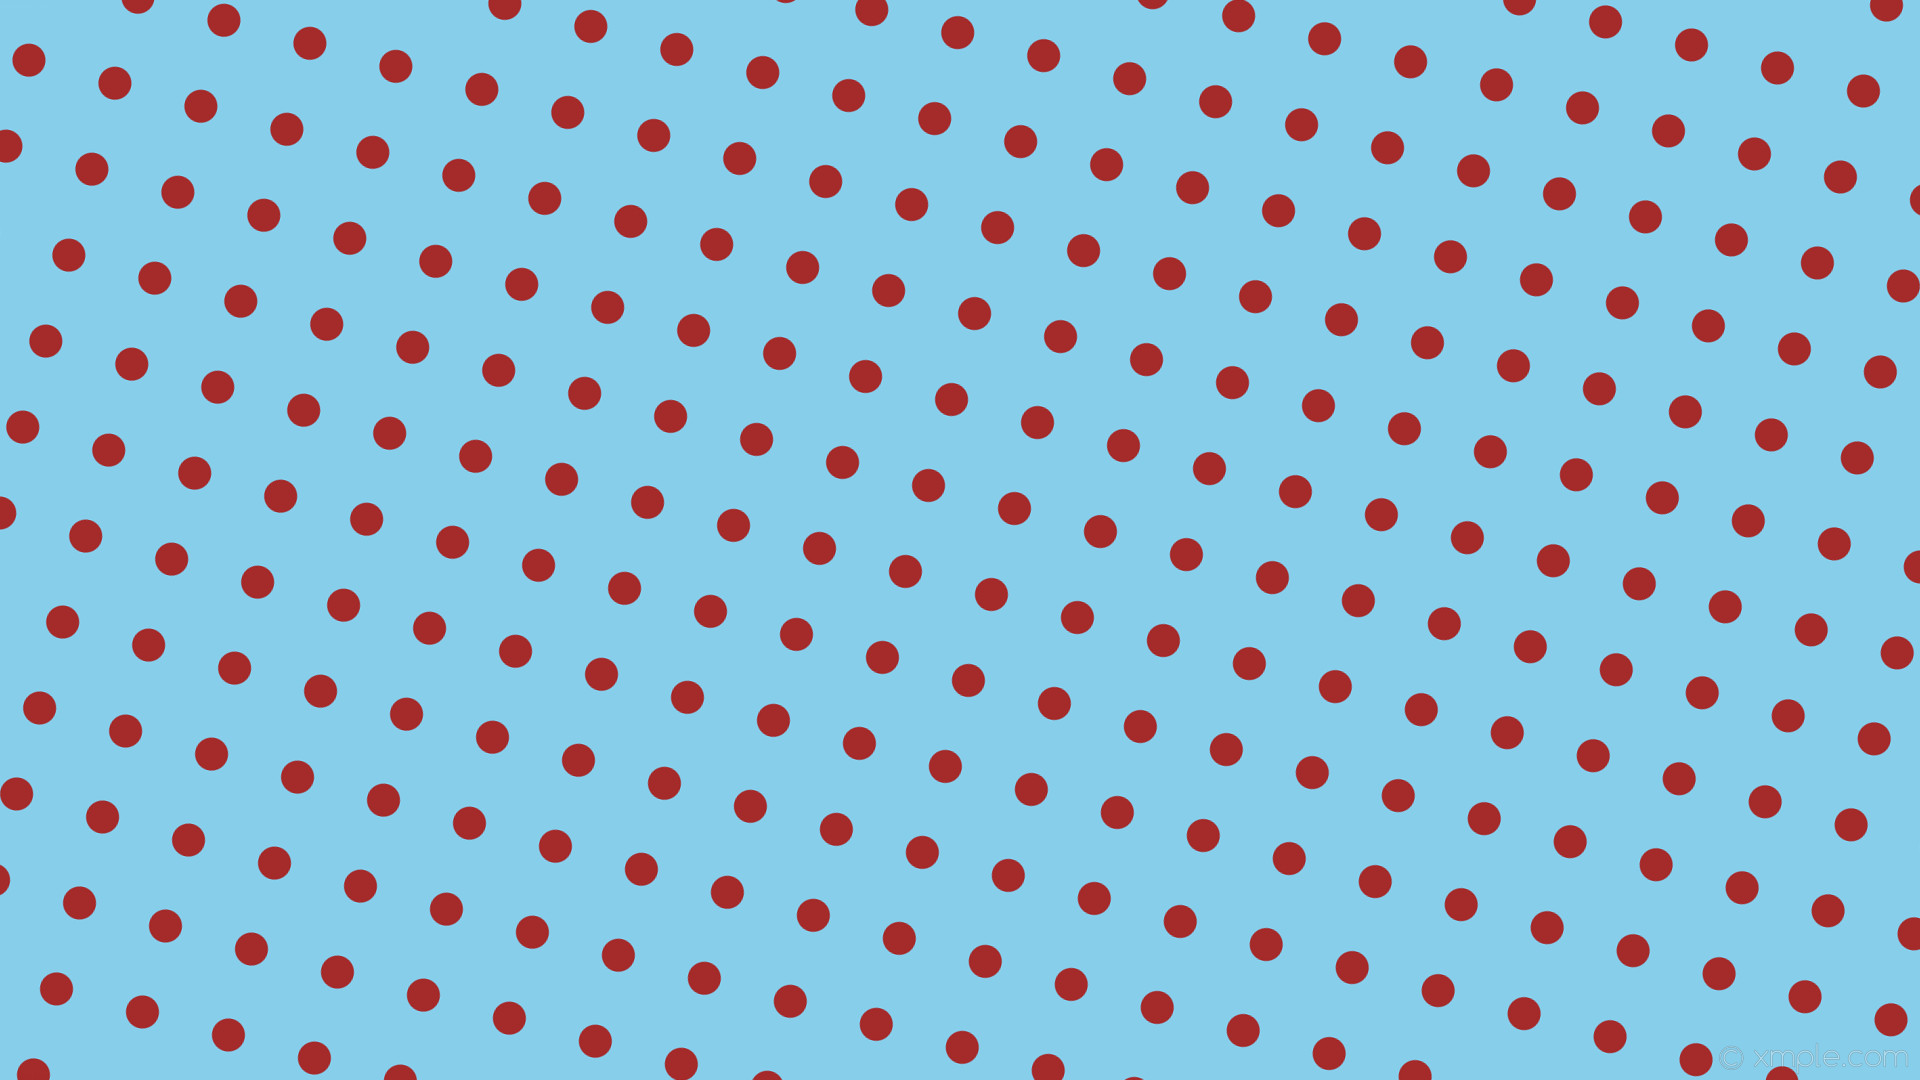 wallpaper spots polka dots brown blue sky blue #87ceeb #a52a2a 345° 33px  89px